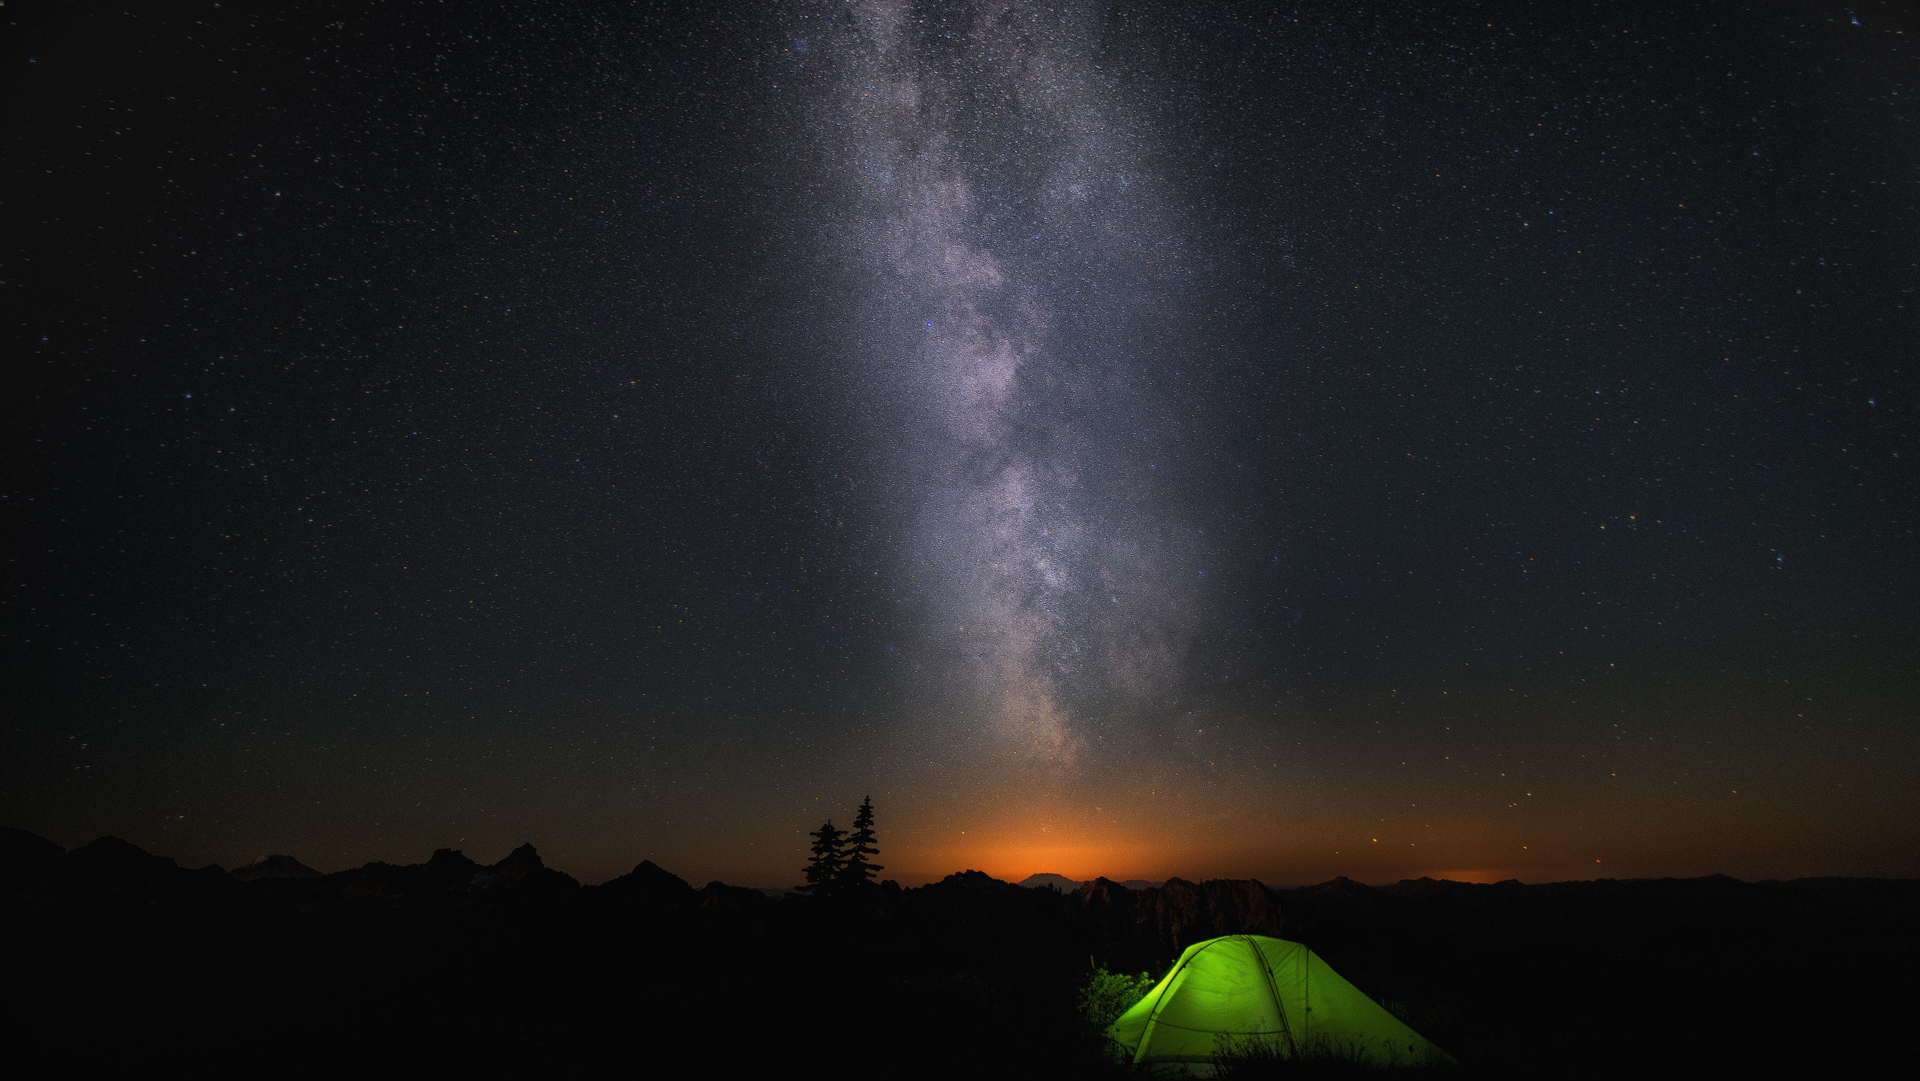 Pin By Riley Baker On Backgrounds Camping Wallpaper Windows 10 Landscape Wallpaper